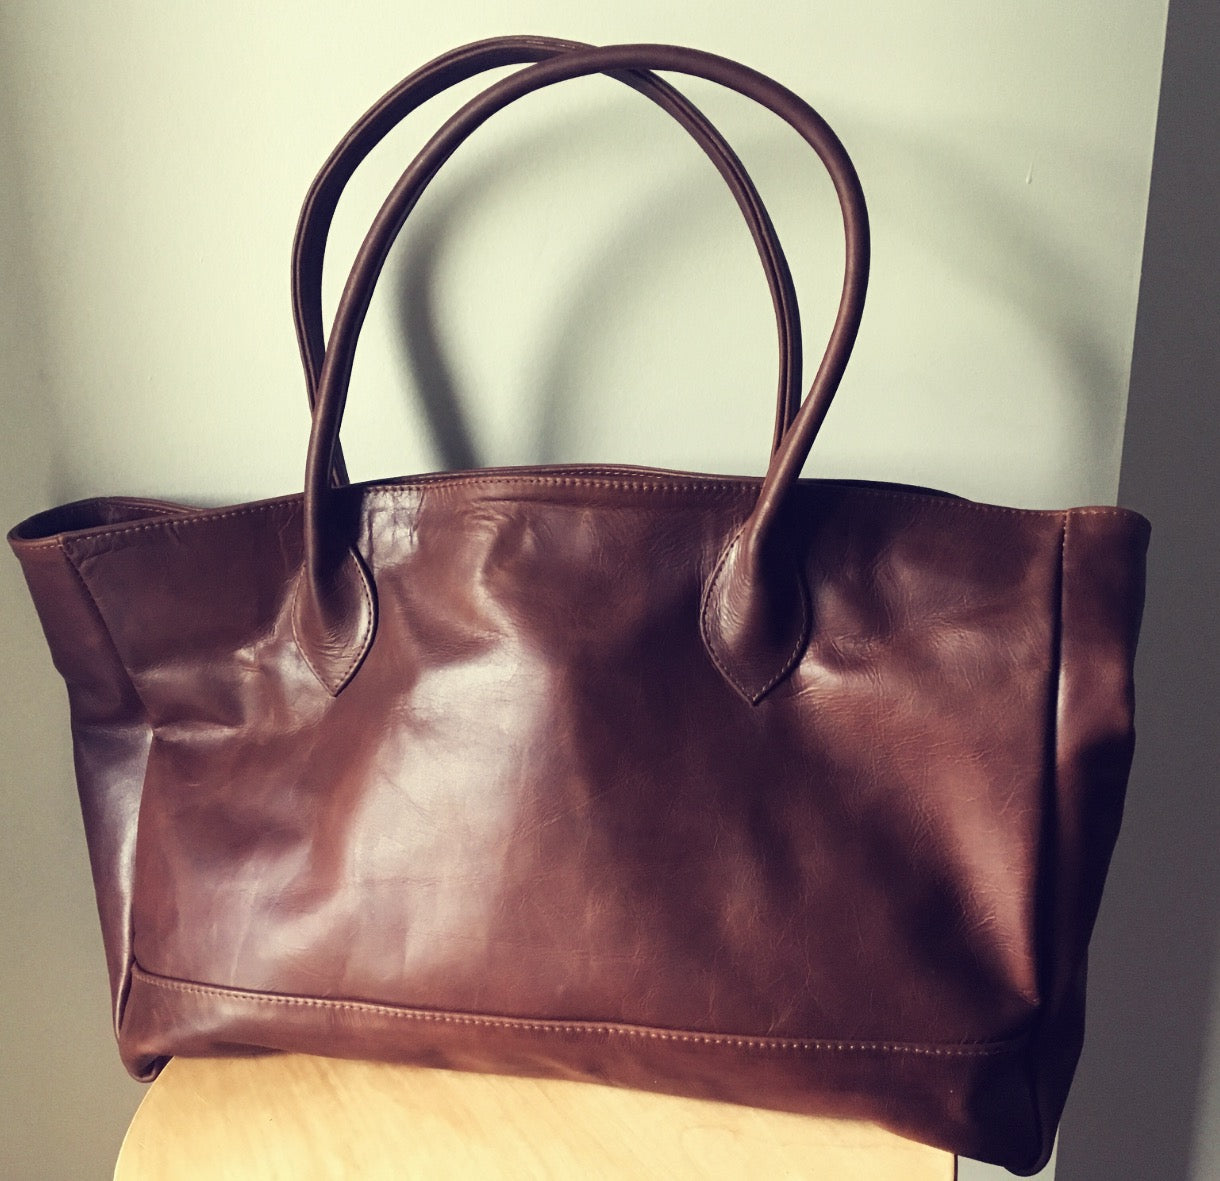 The Patron Tote- Classic style meets function